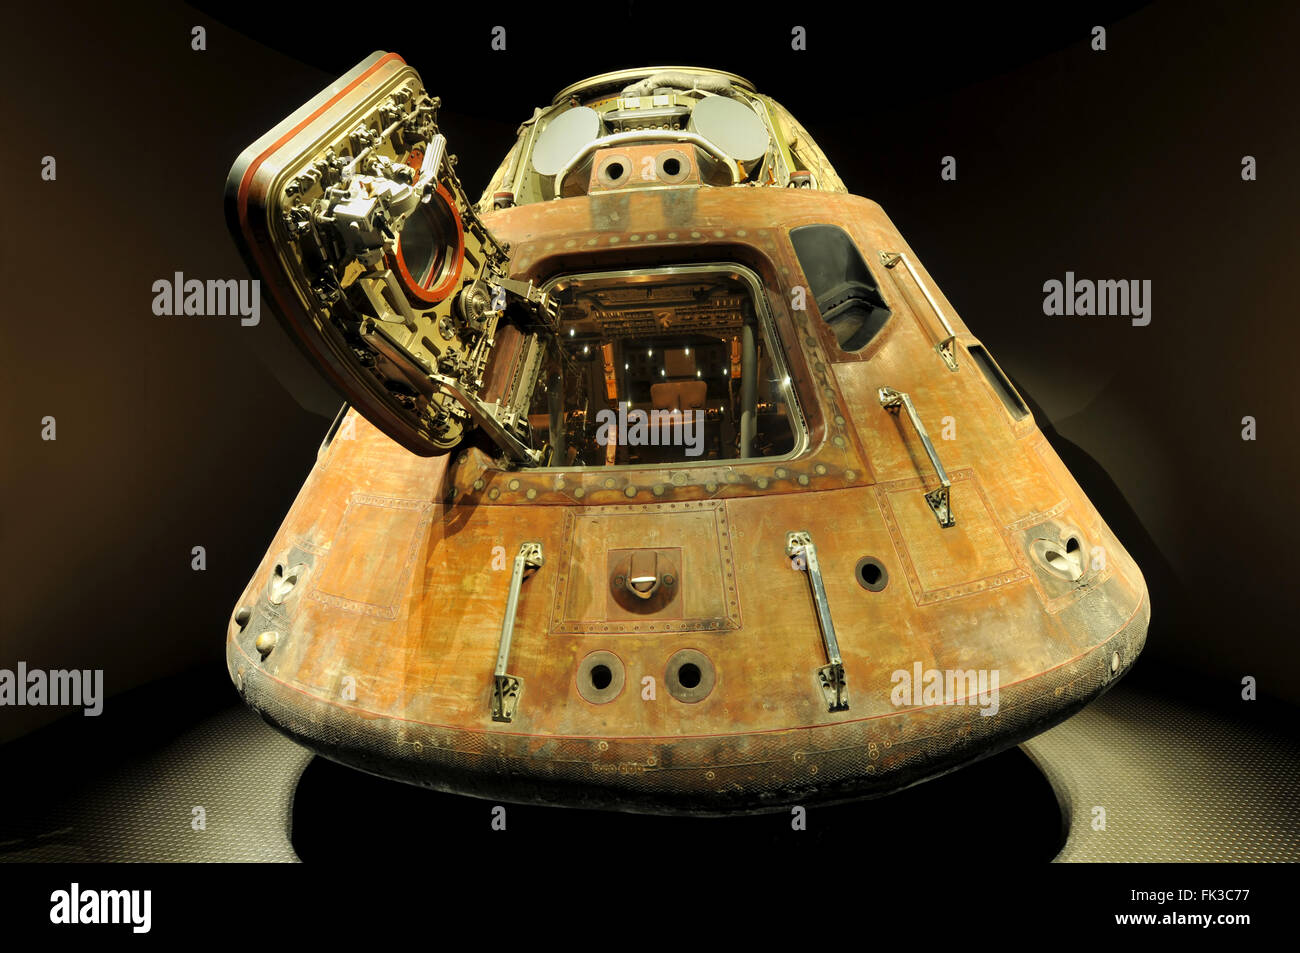 CAPE CANAVERAL, FL- DEC 28: Apollo 13 LEM capsule displayed at NASA, Kennedy Space Center in Florida, December 28, - Stock Image